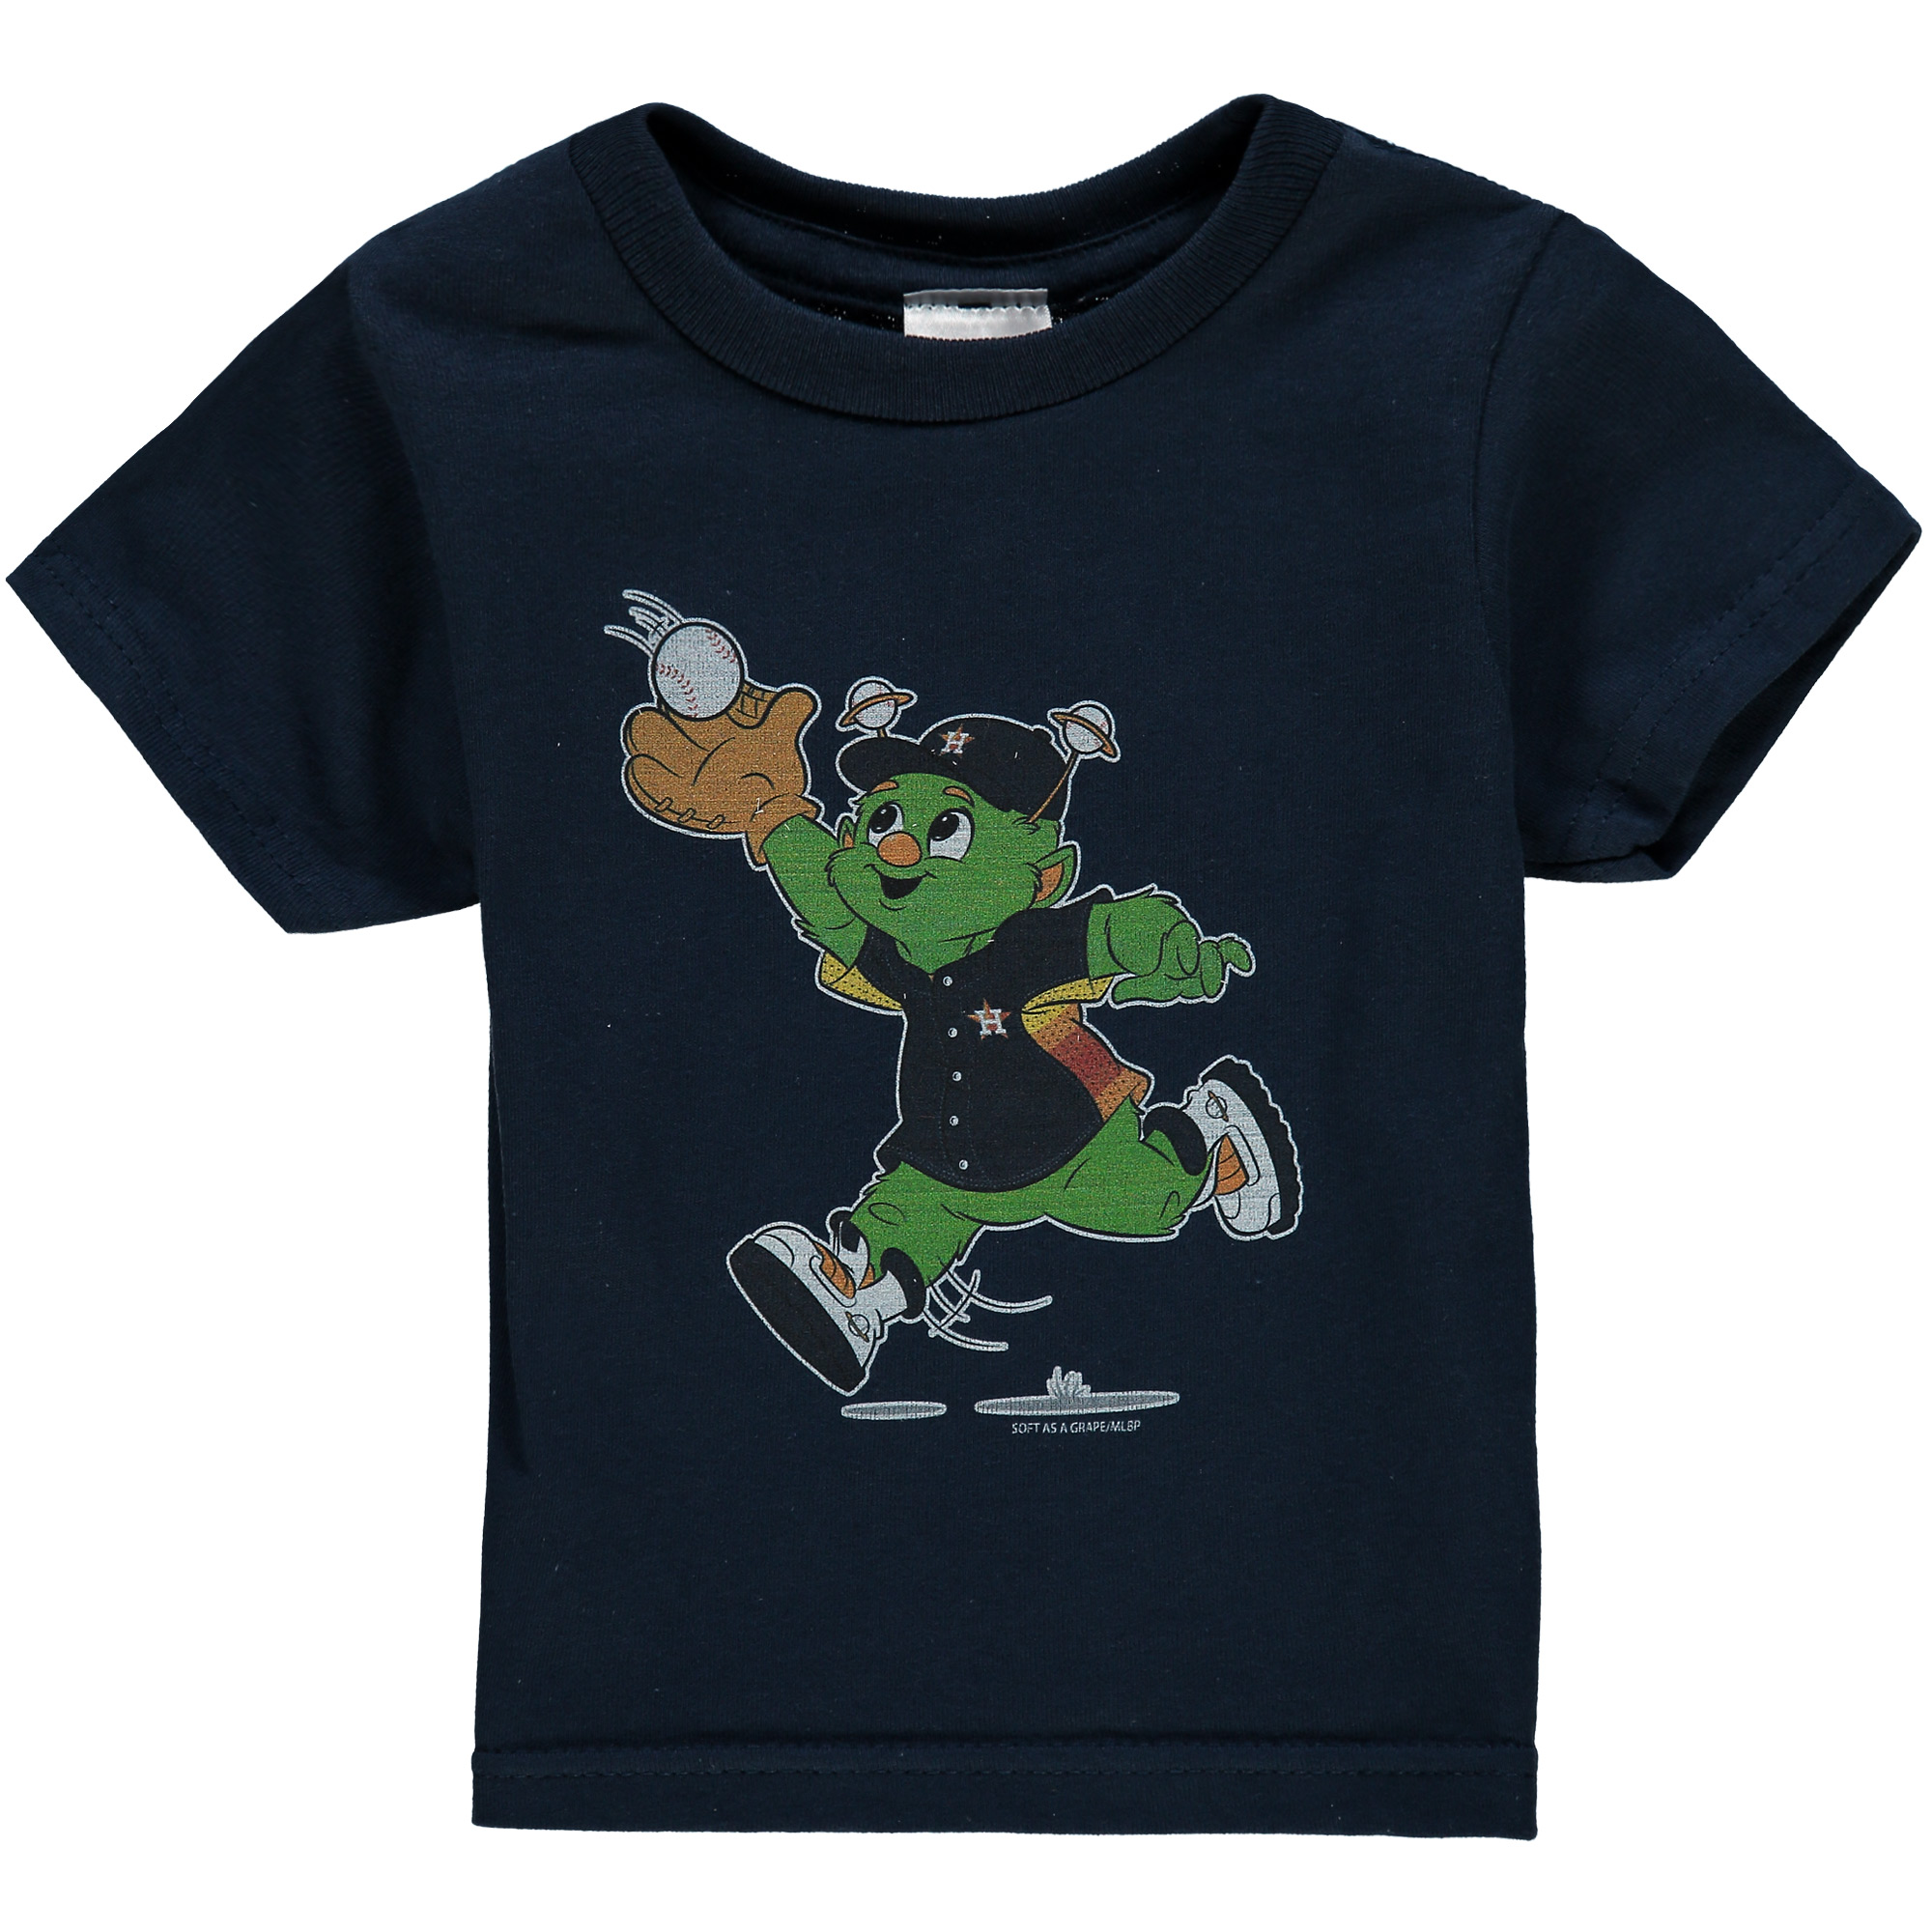 Houston Astros Soft as a Grape Toddler Distressed Mascot T-Shirt - Navy